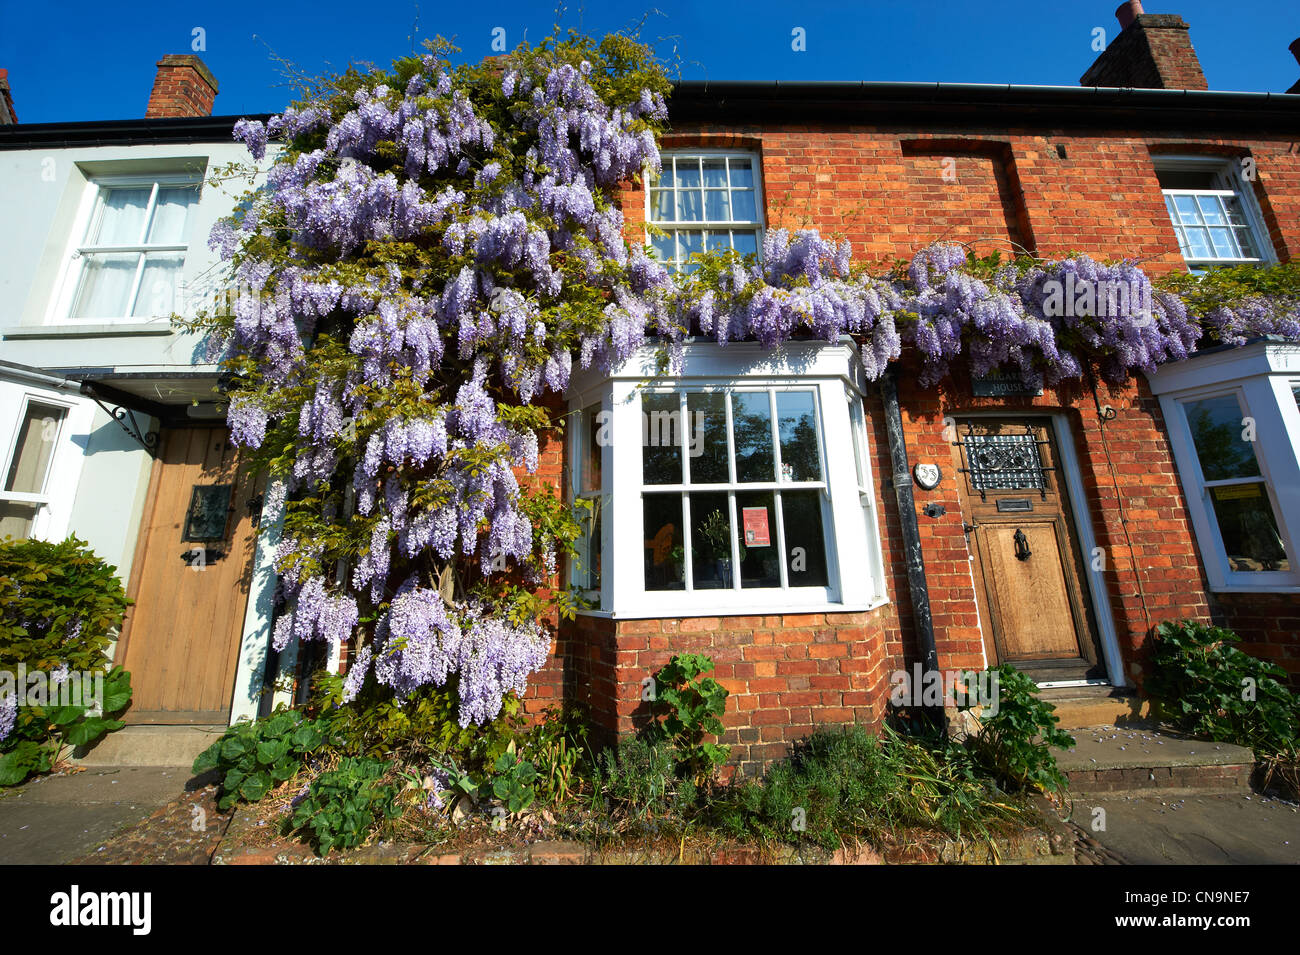 Town cottages with wisteria growing on them. Buckingham High Street, Bucks - Stock Image